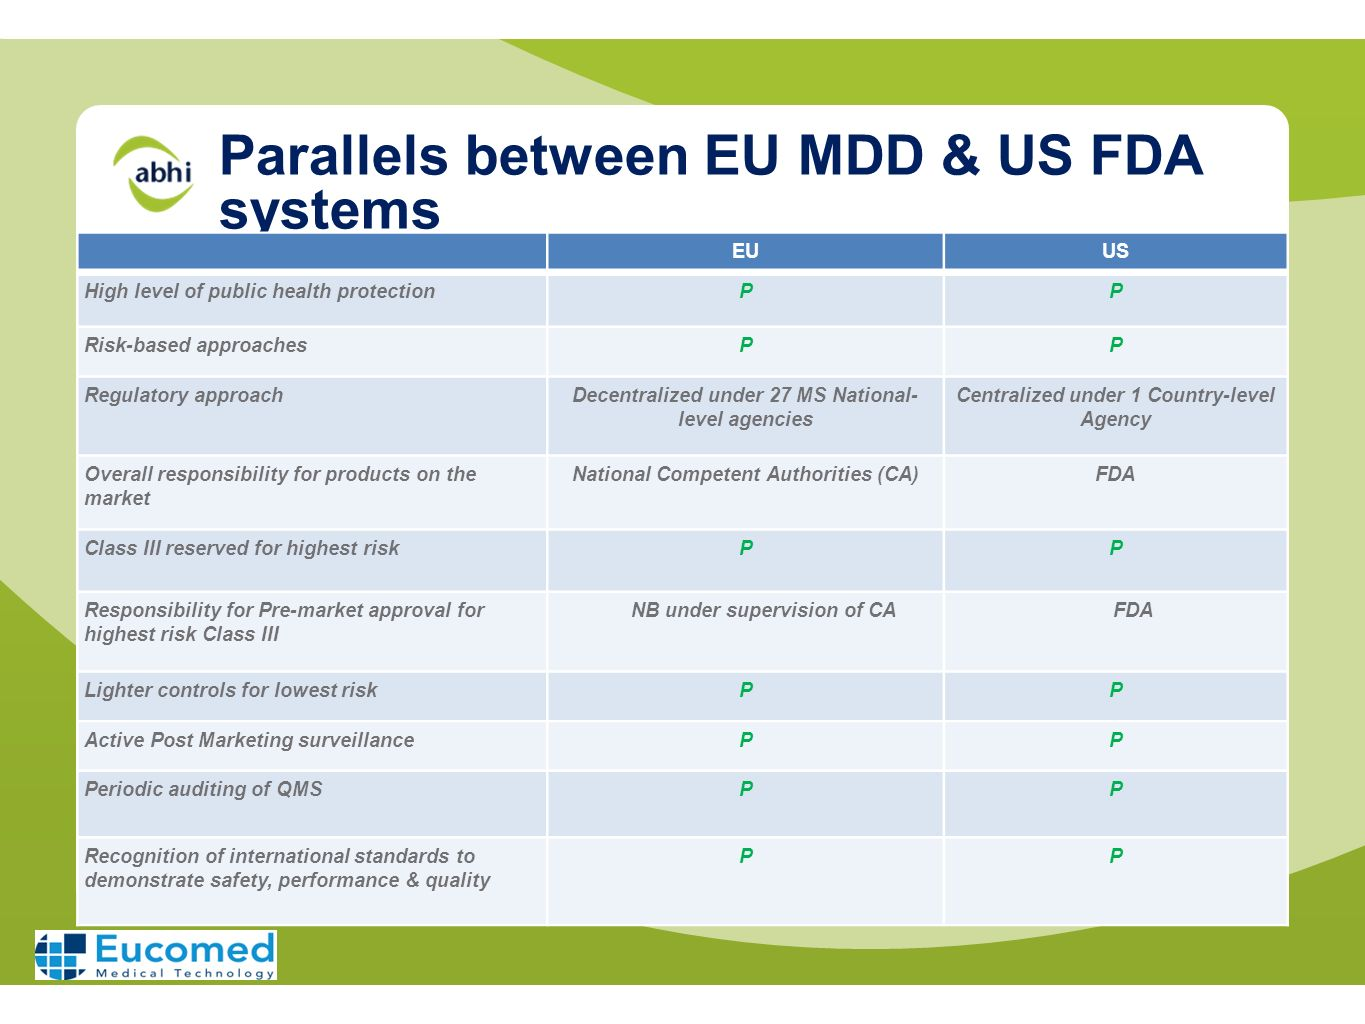 Parallels between EU MDD & US FDA systems